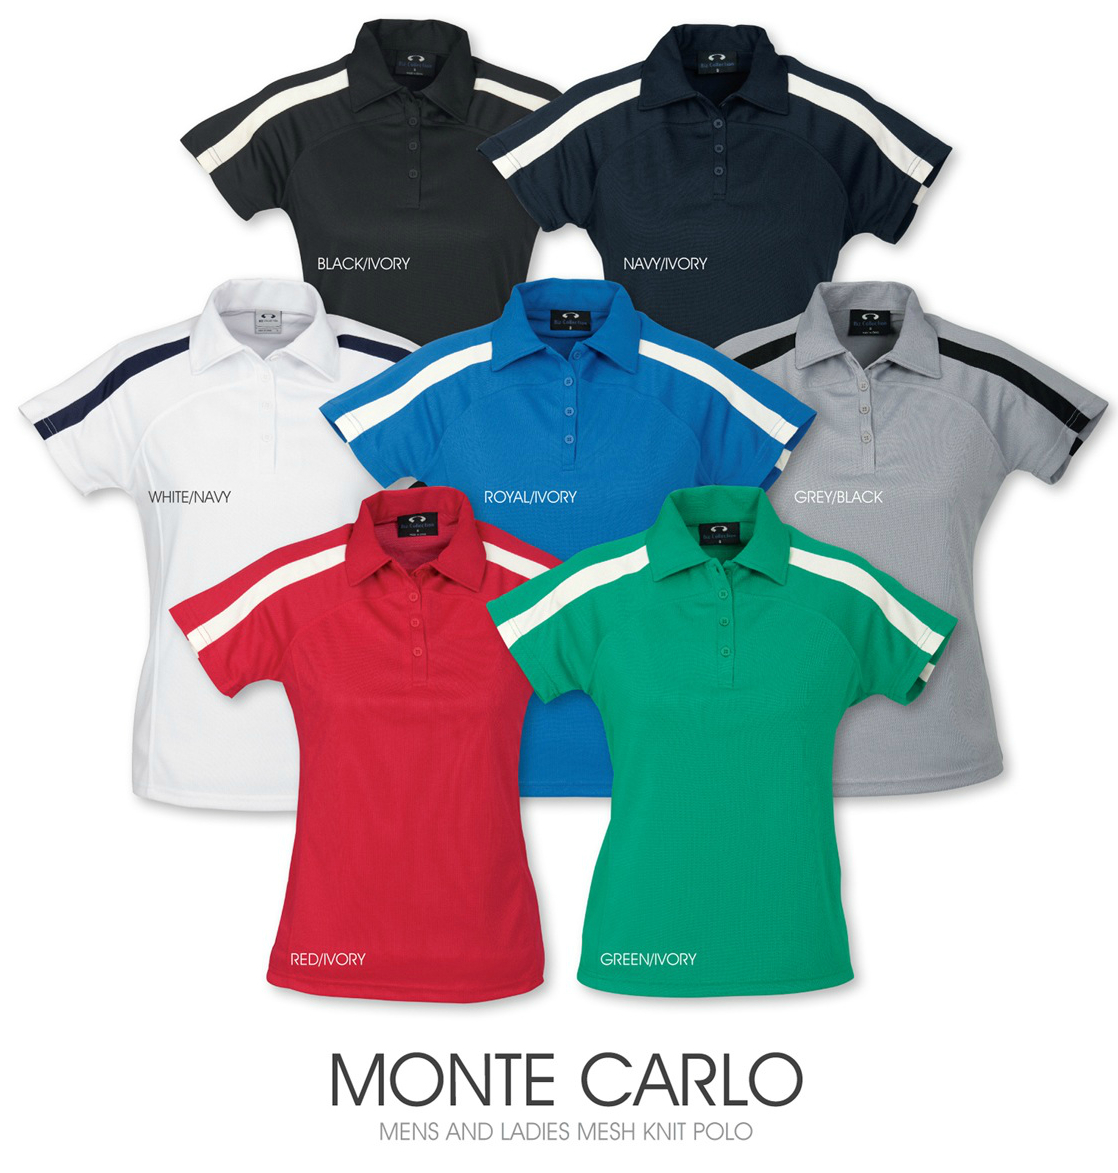 Monte Carlo men's and ladies mesh knit polo.jpg